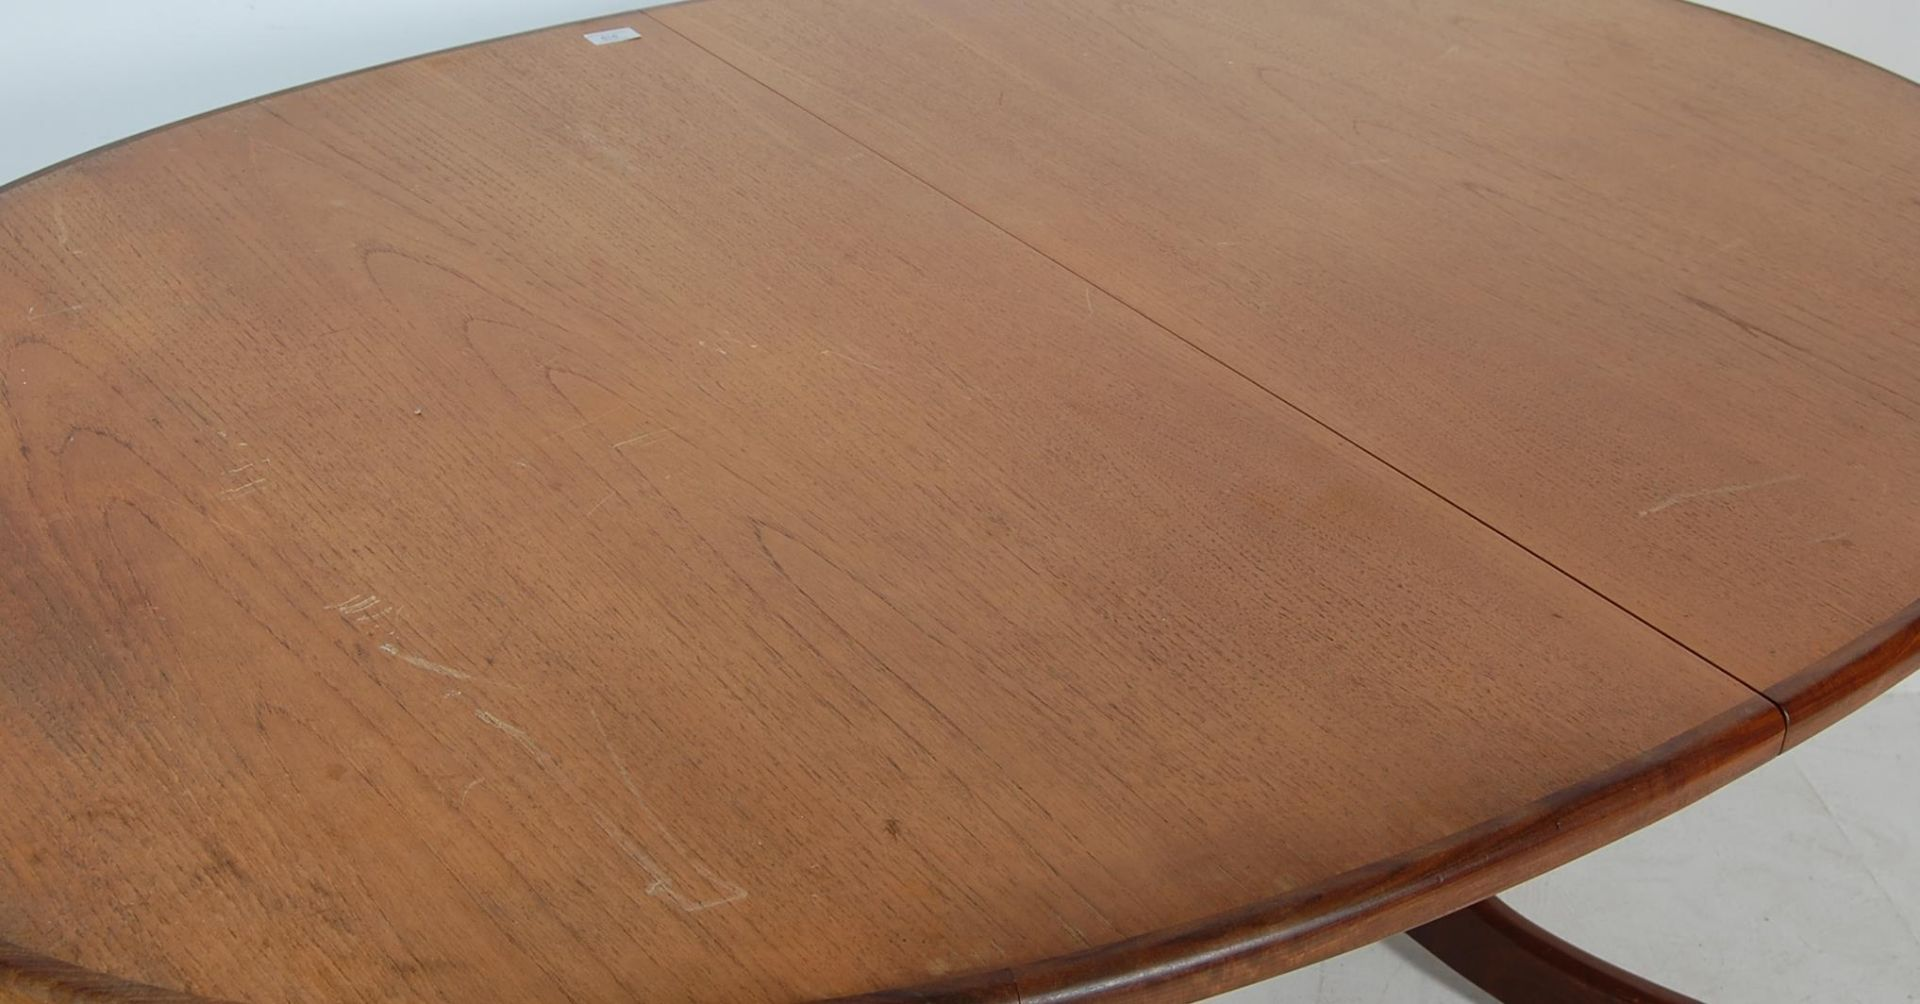 RETRO VINTAGE 1970S GPLAN DINING TABLE AND CHAIRS - Image 3 of 12